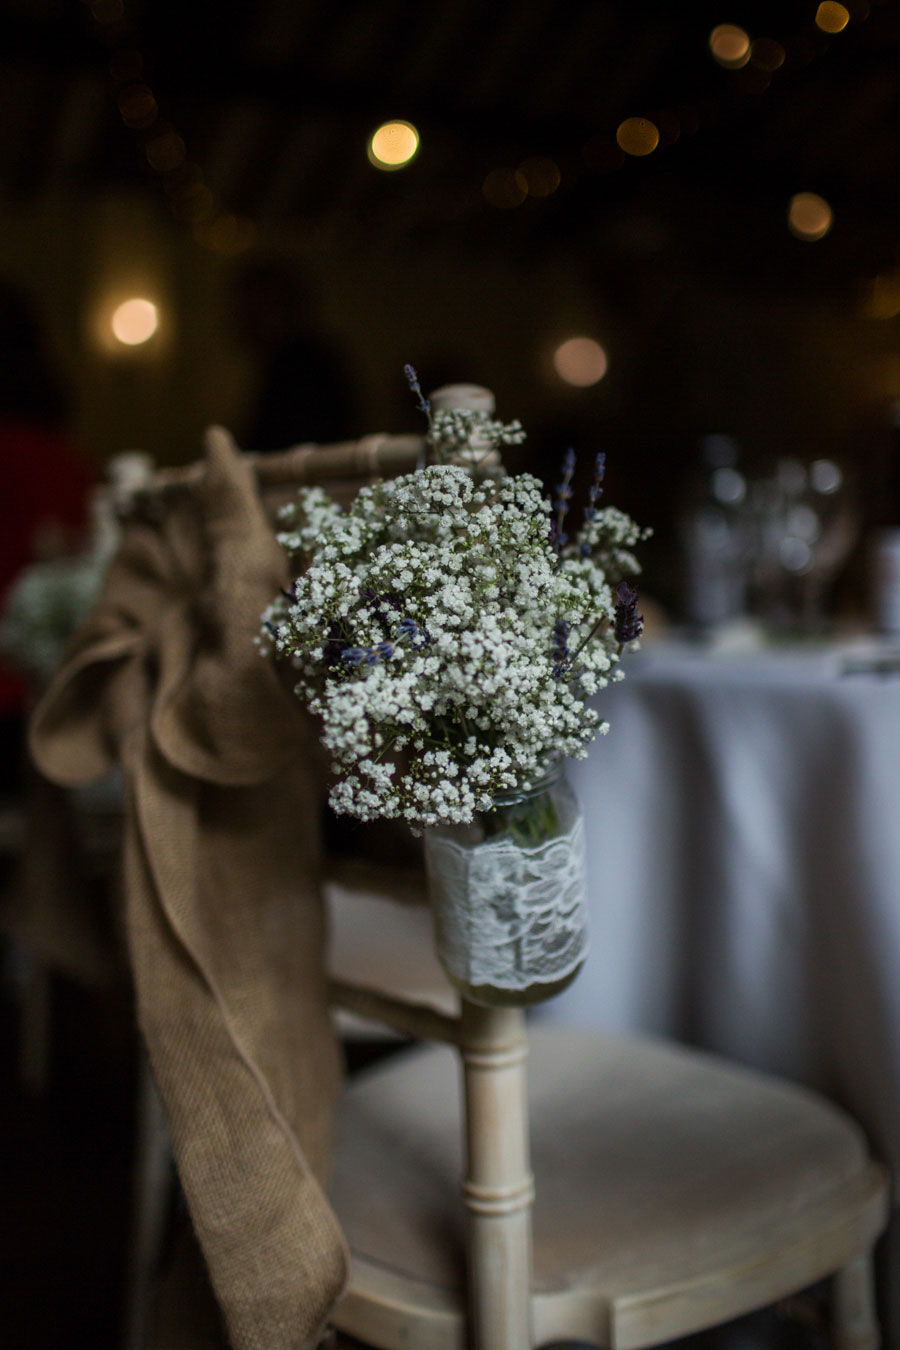 Wildflowers-Hessian-Hops-A-Country-Wedding0106.jpg